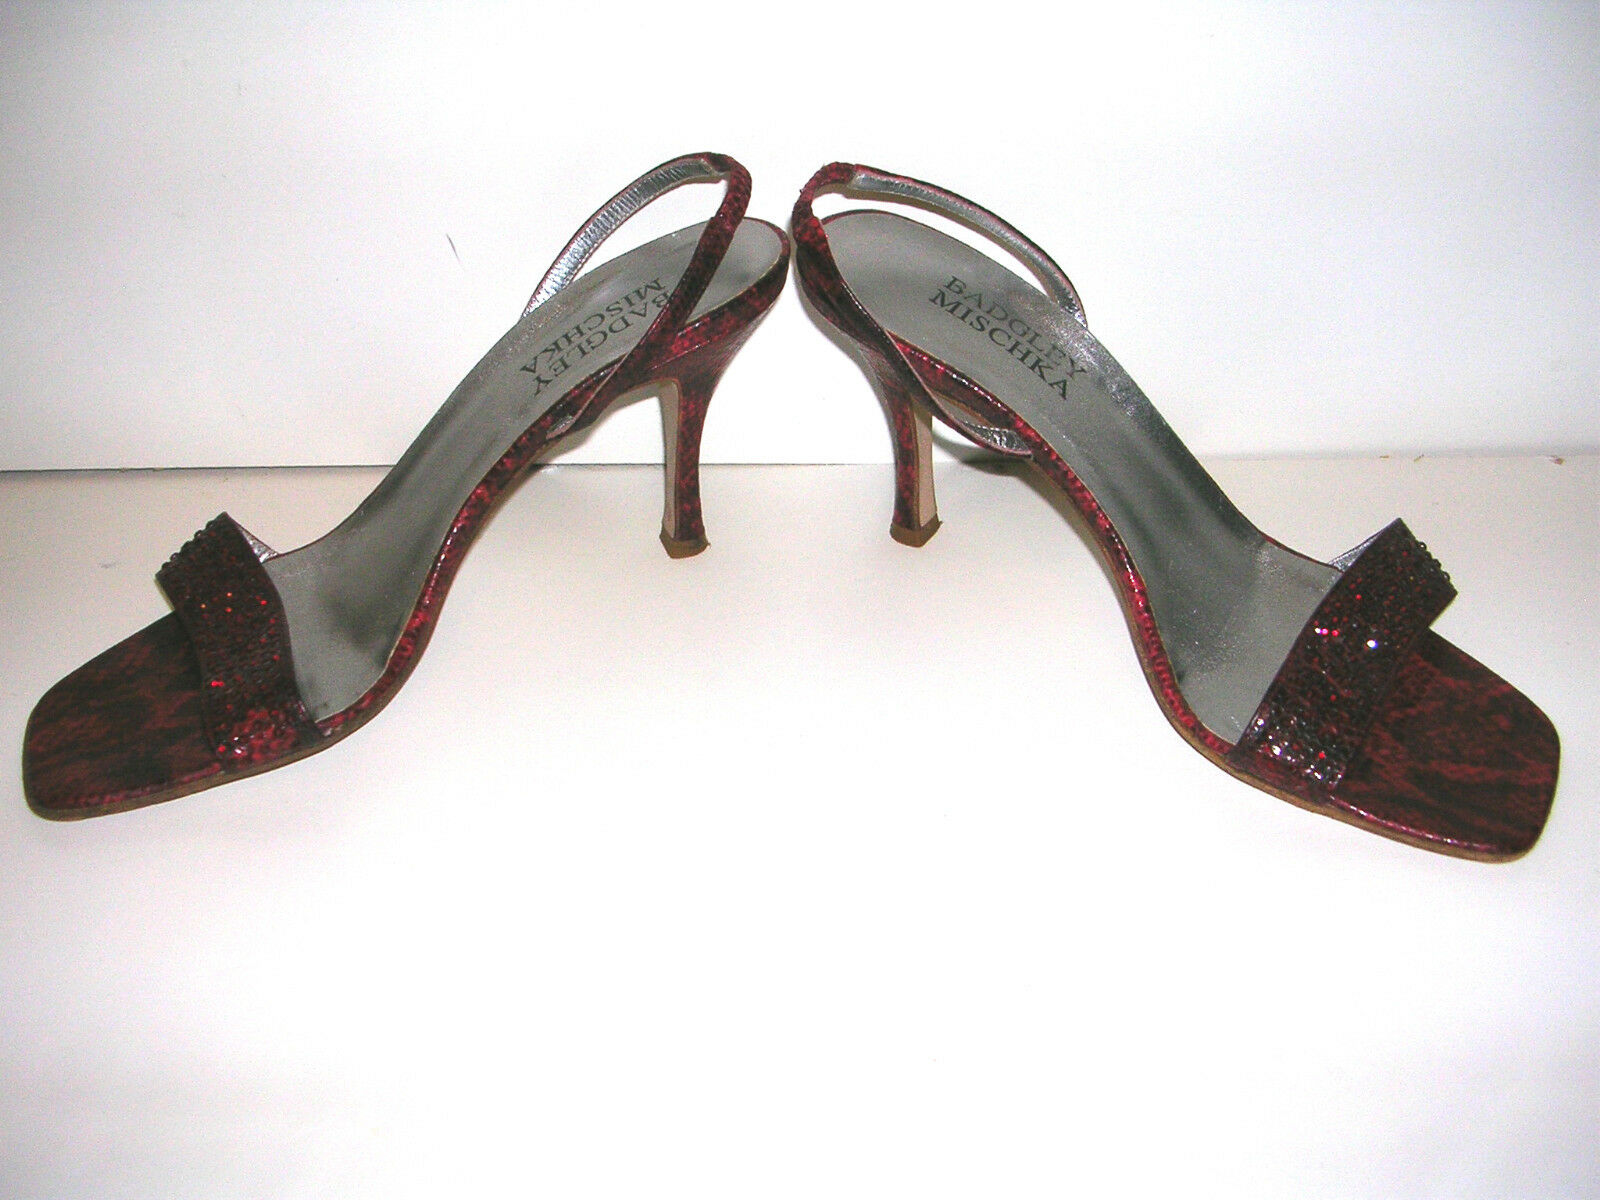 BADGLEY MISCHKA LIPSTICK RED WITH HIGH HEEL SLING BACKS WITH RED CRYSTALS SIZE 38.5 86372b